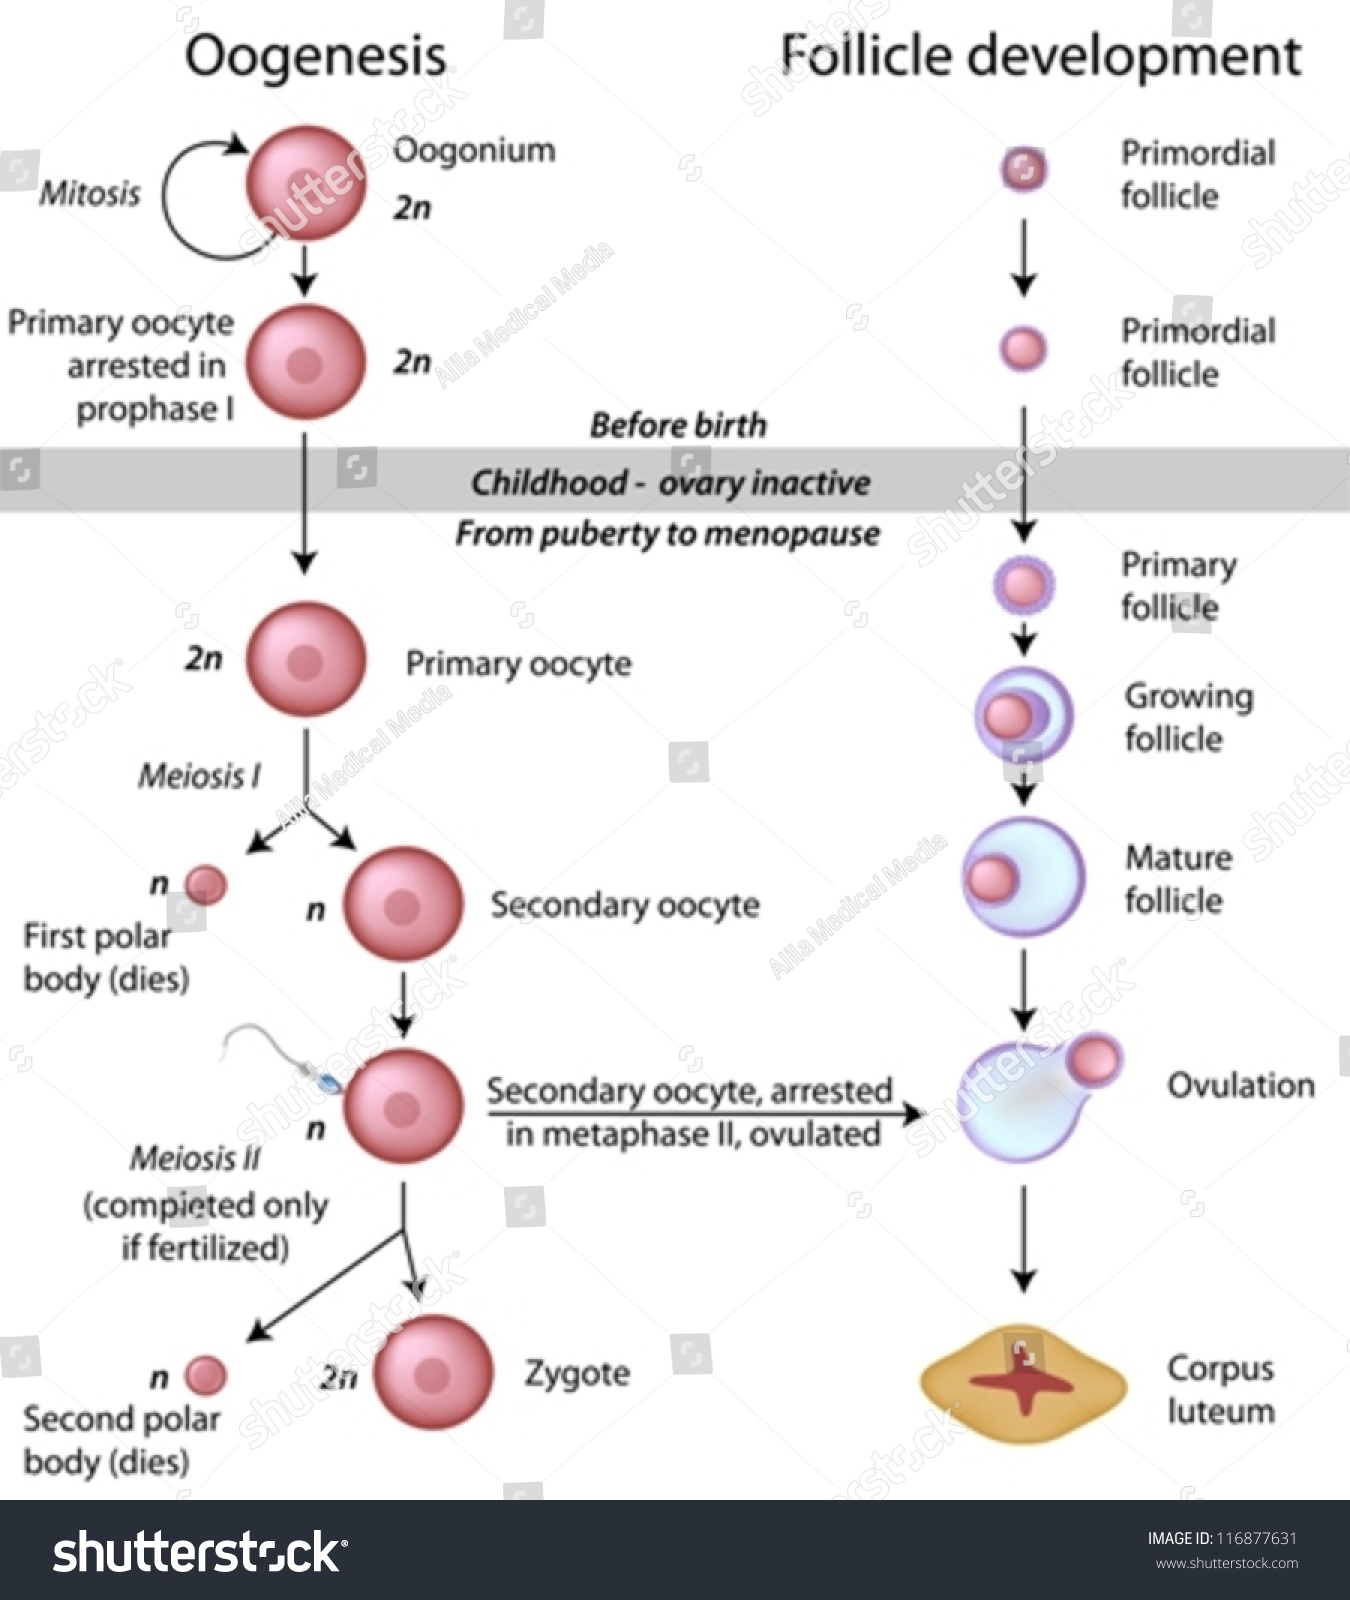 Spermatogenesis and ovogenesis are the processes of formation and formation of germ cells 32